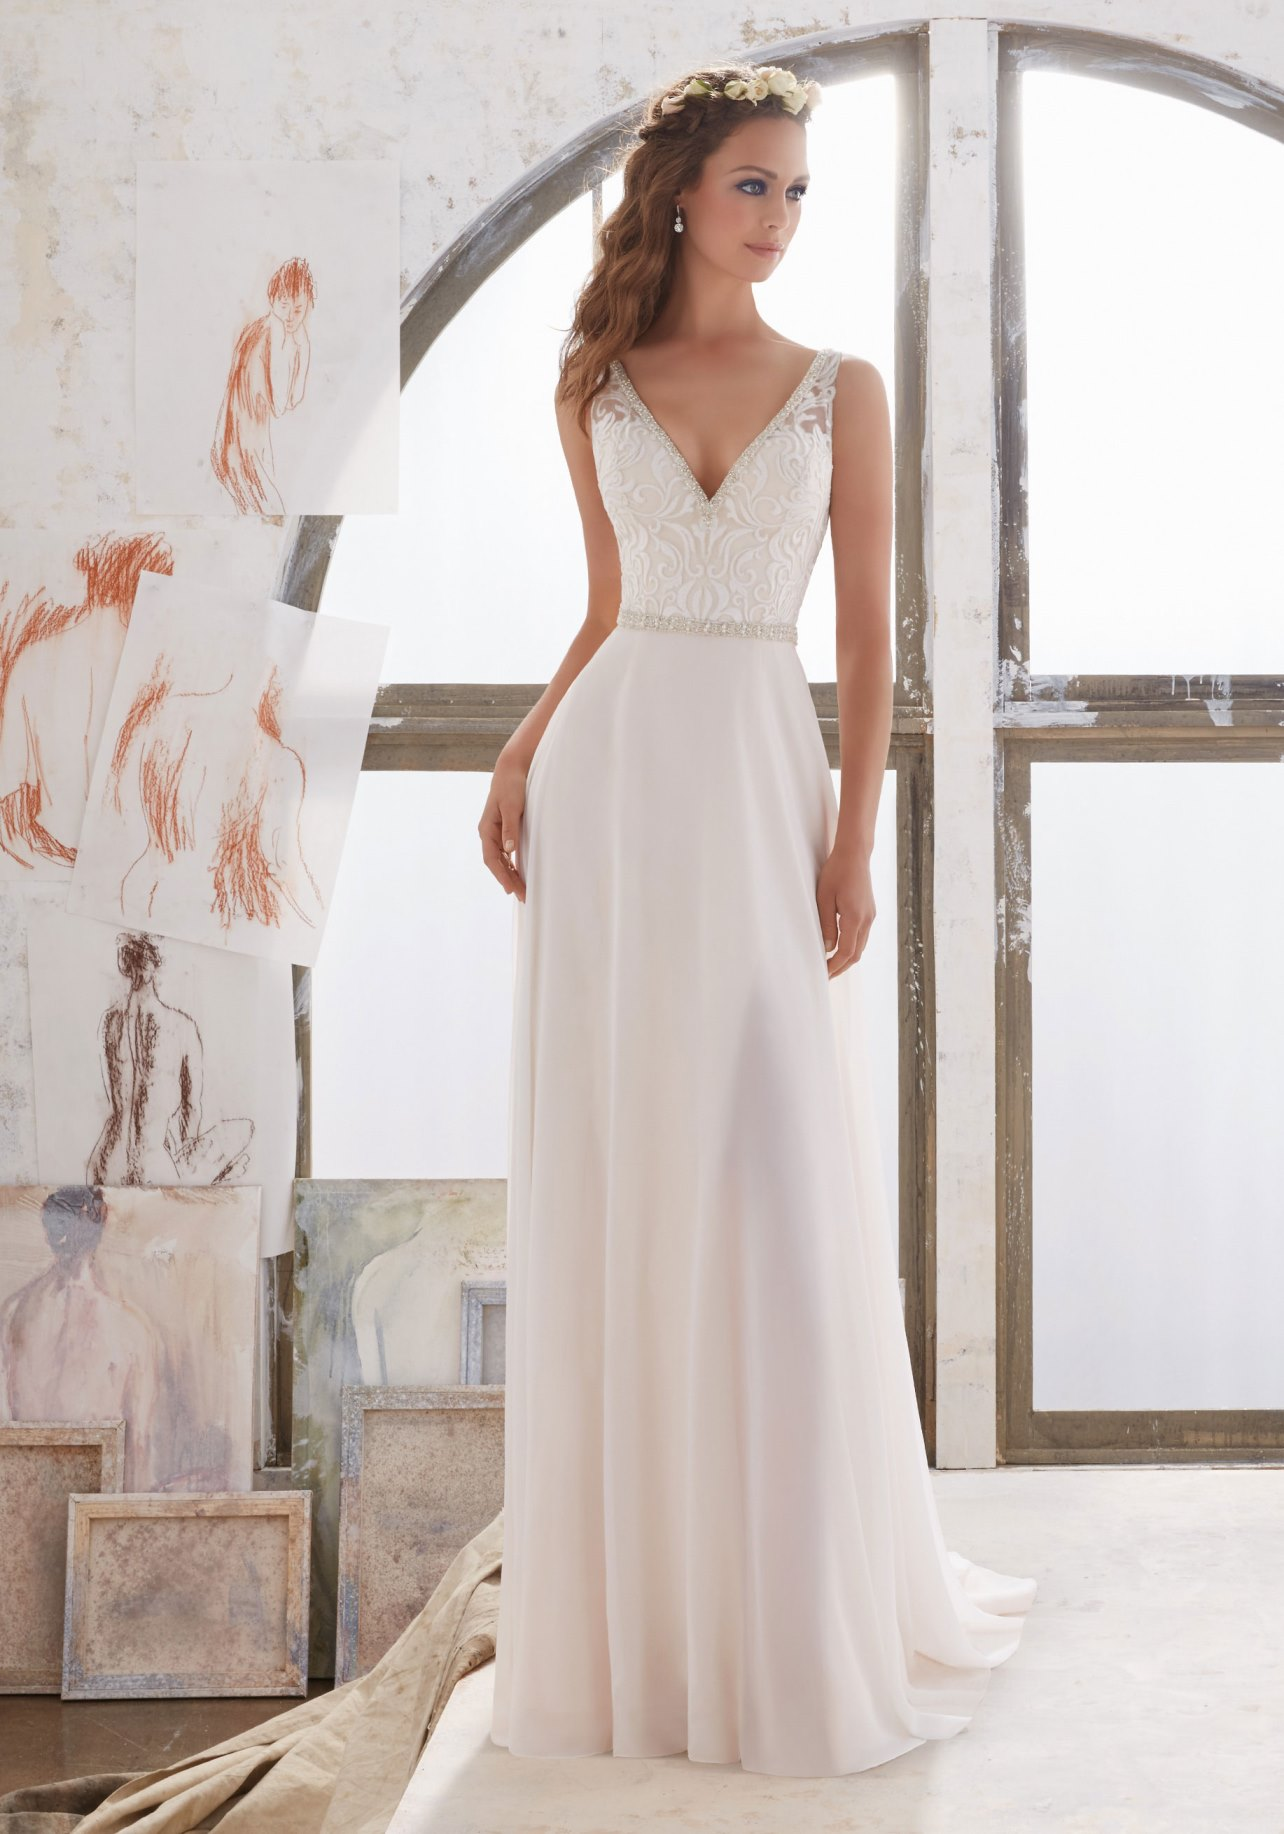 9 Things to remember when Destination Wedding Dress shopping ...